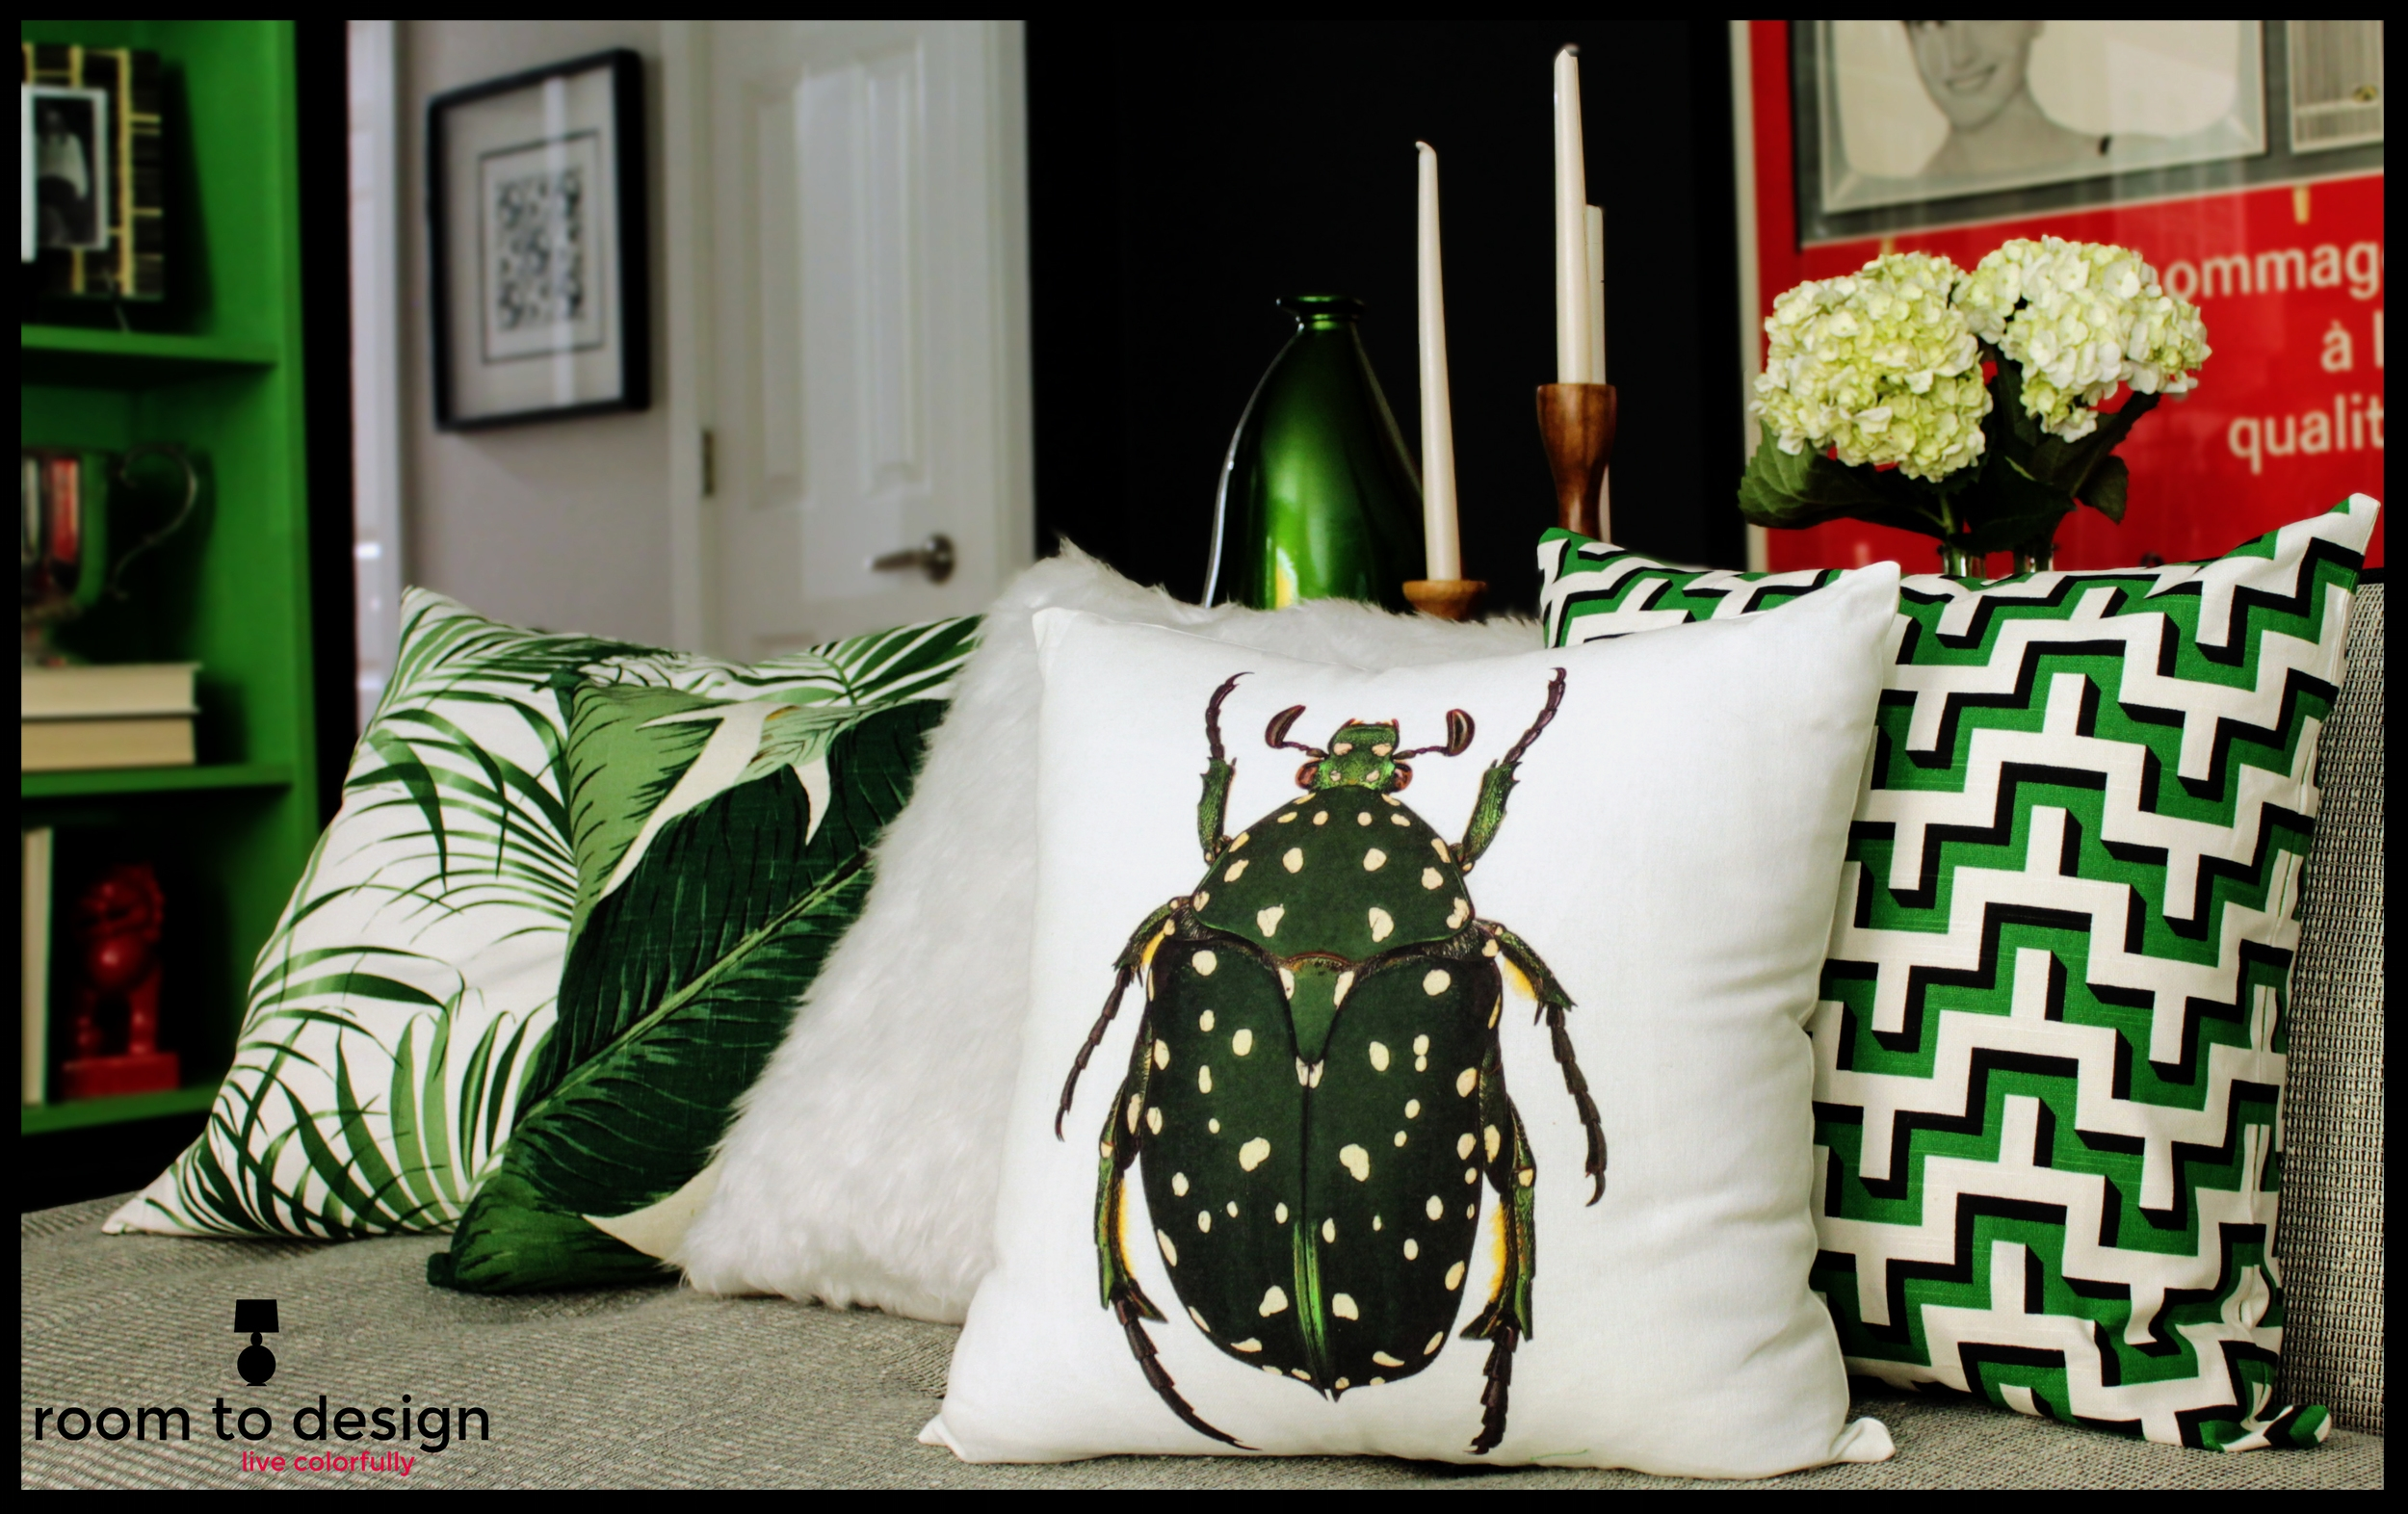 before-and-after-living-room-makeover-pillows.jpg